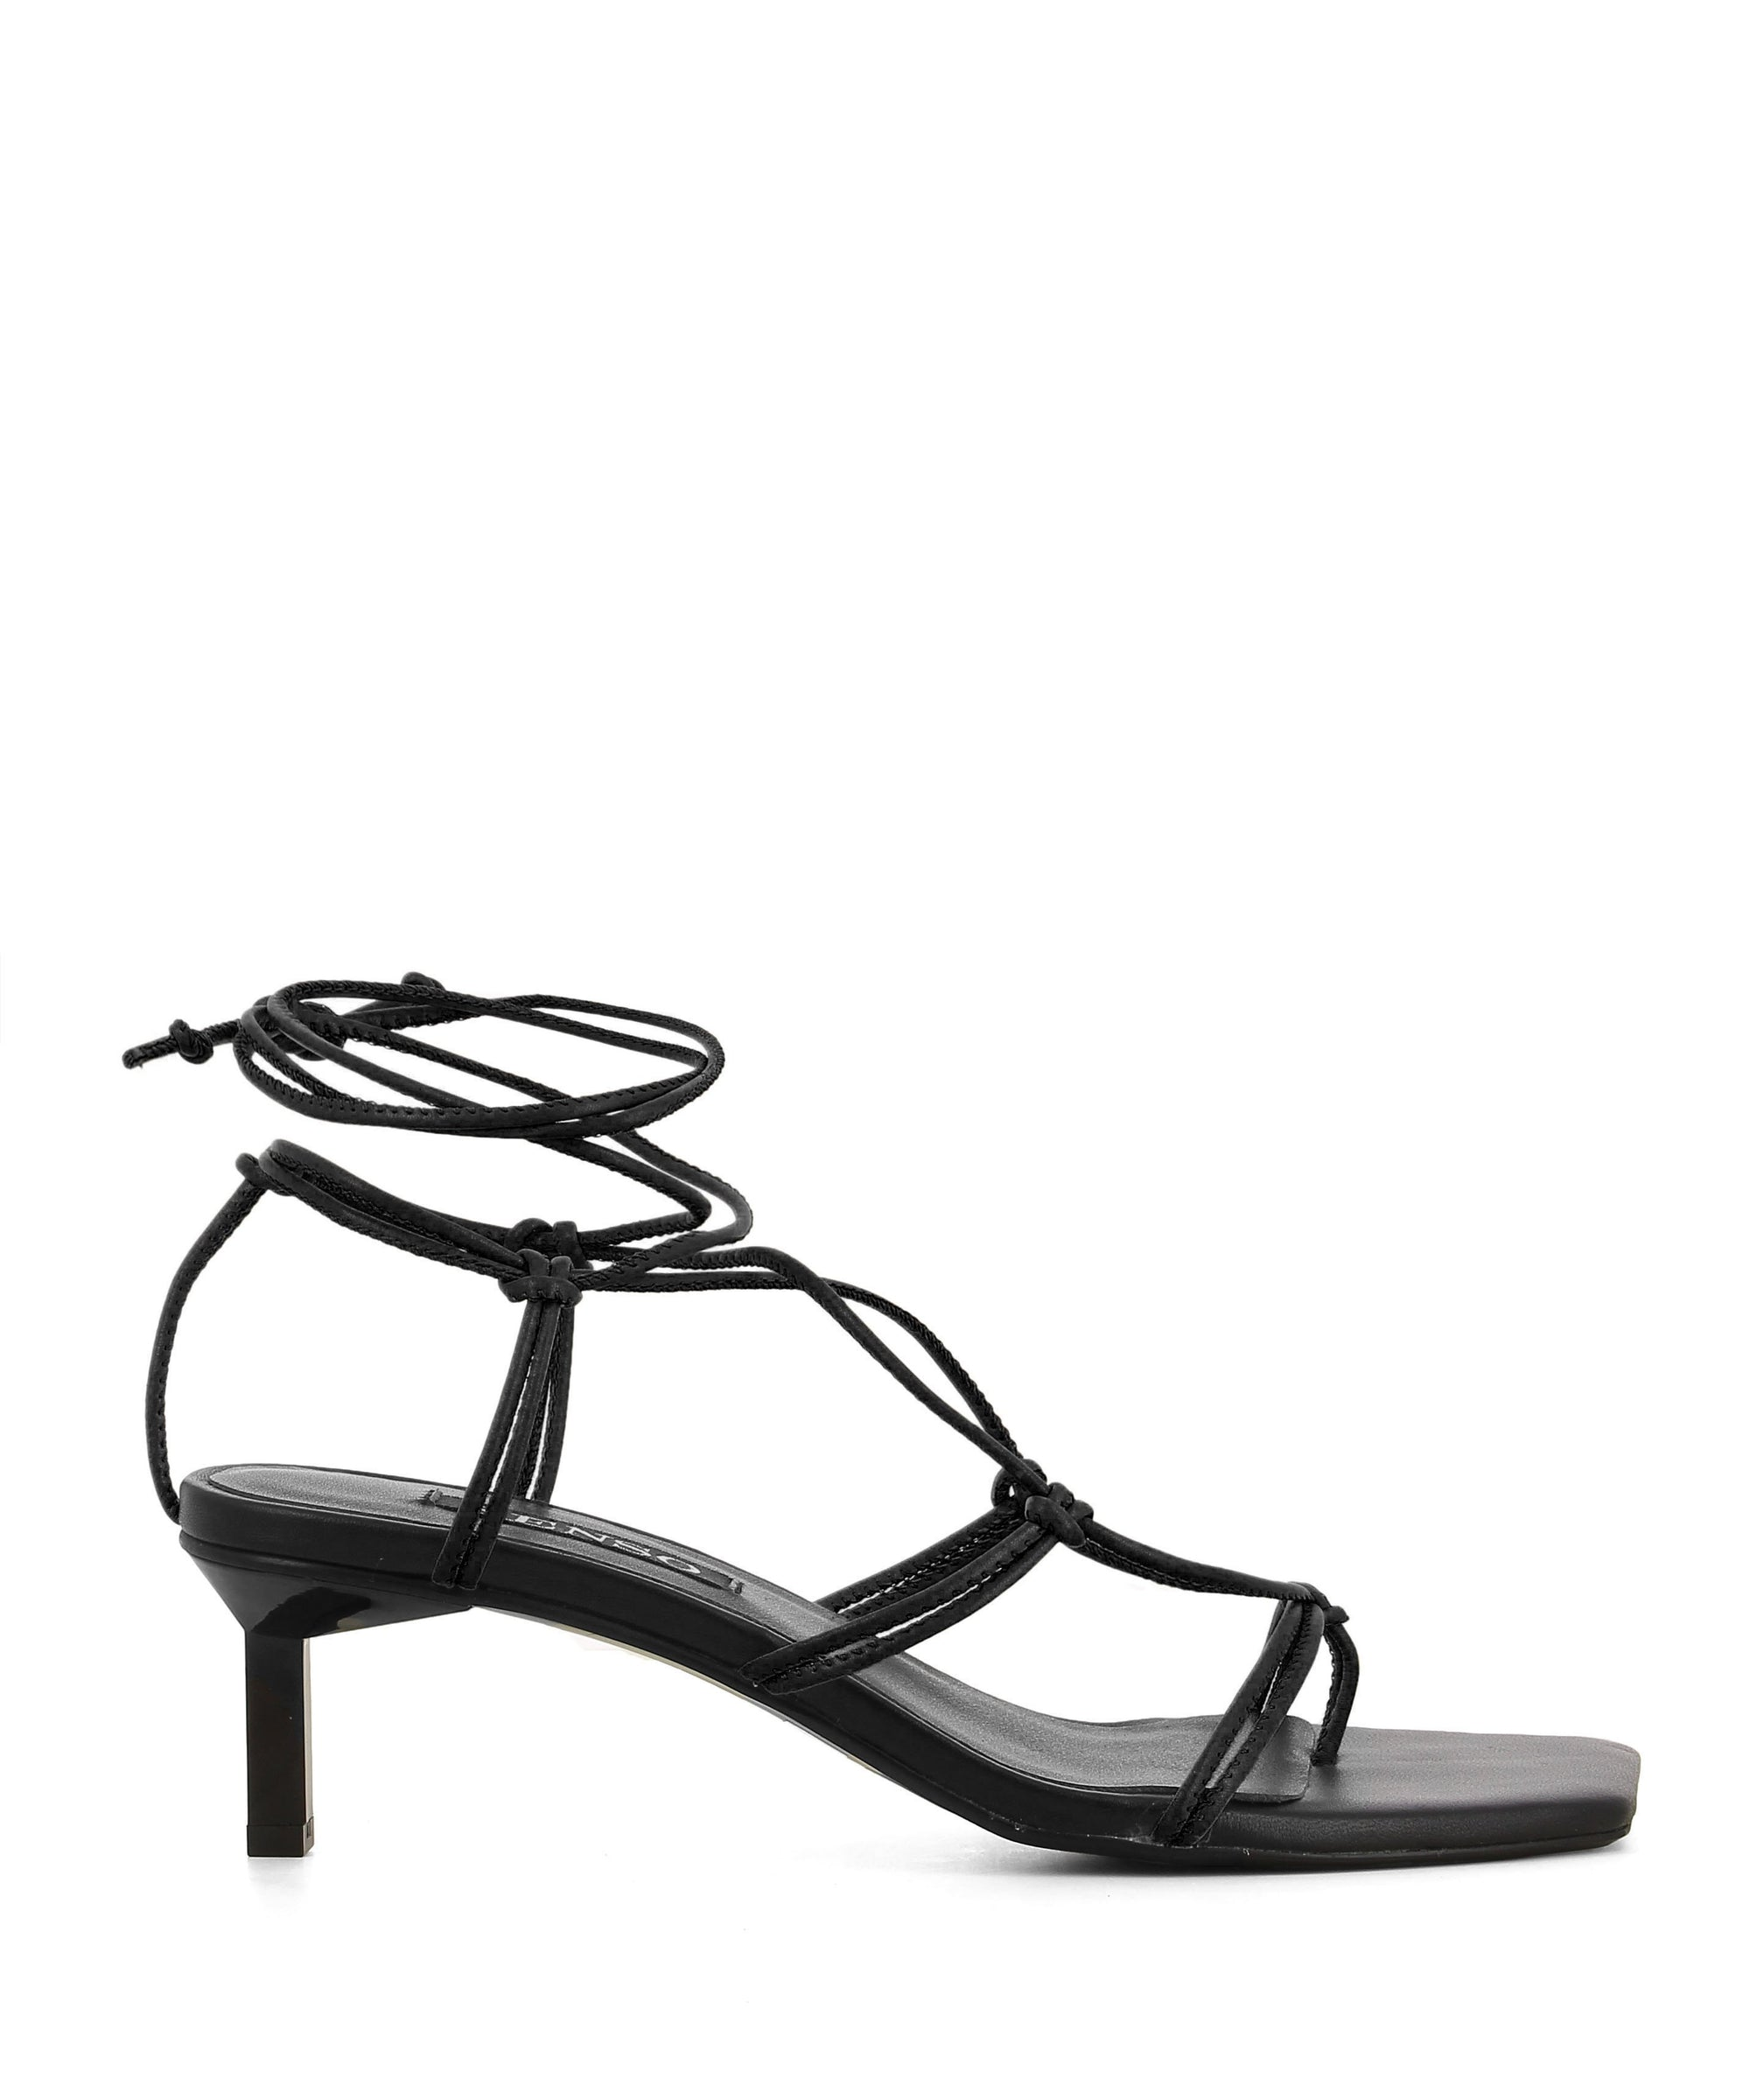 Chic strappy black leather sandals that feature wrap-around ankle fastening, cross over strap detail, a 6 cm kitten heel and a square toe by Senso.